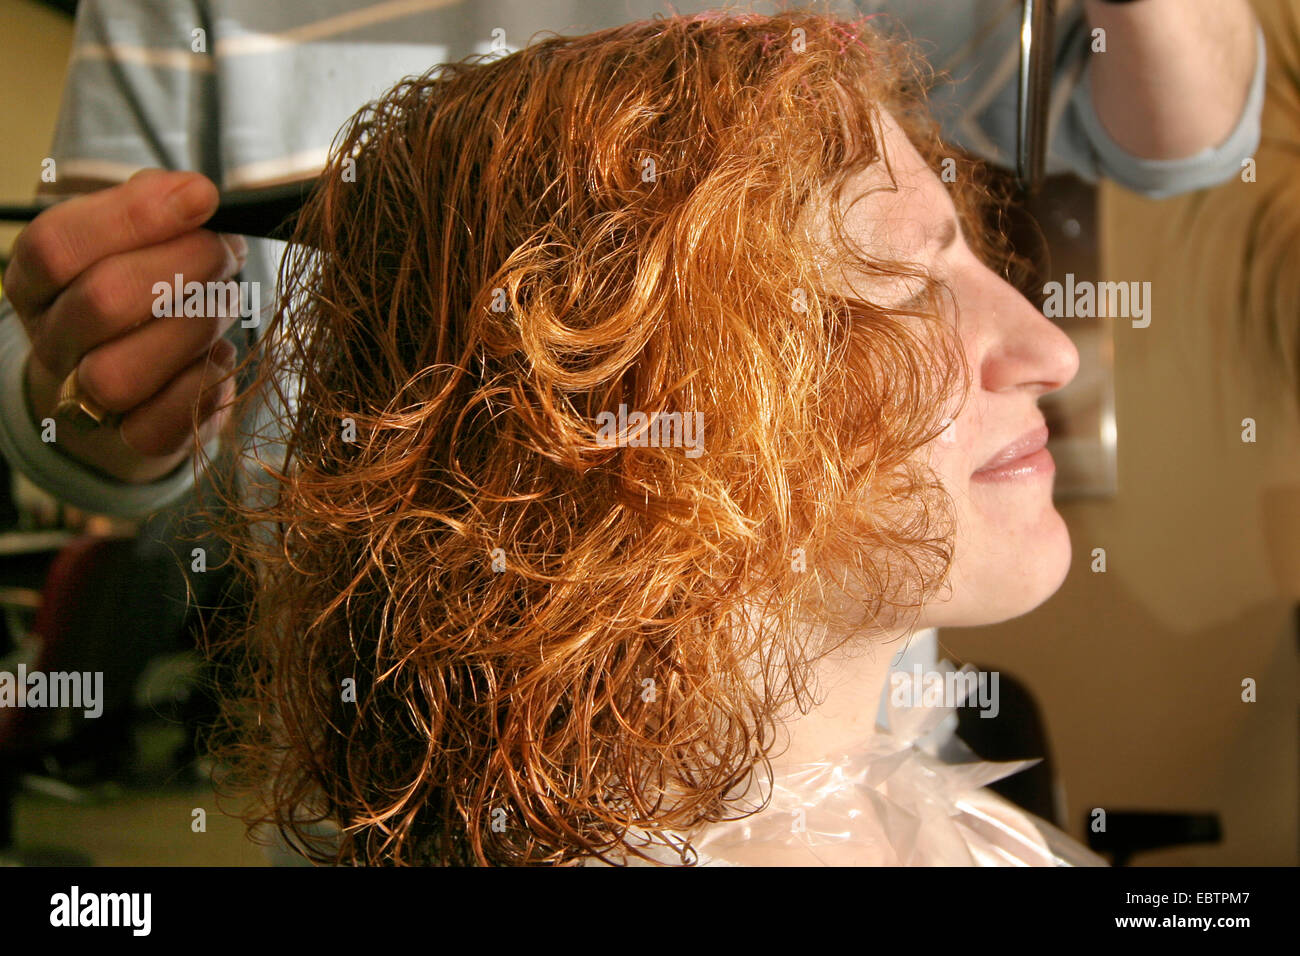 hairdresser dyeing woman's hair - Stock Image